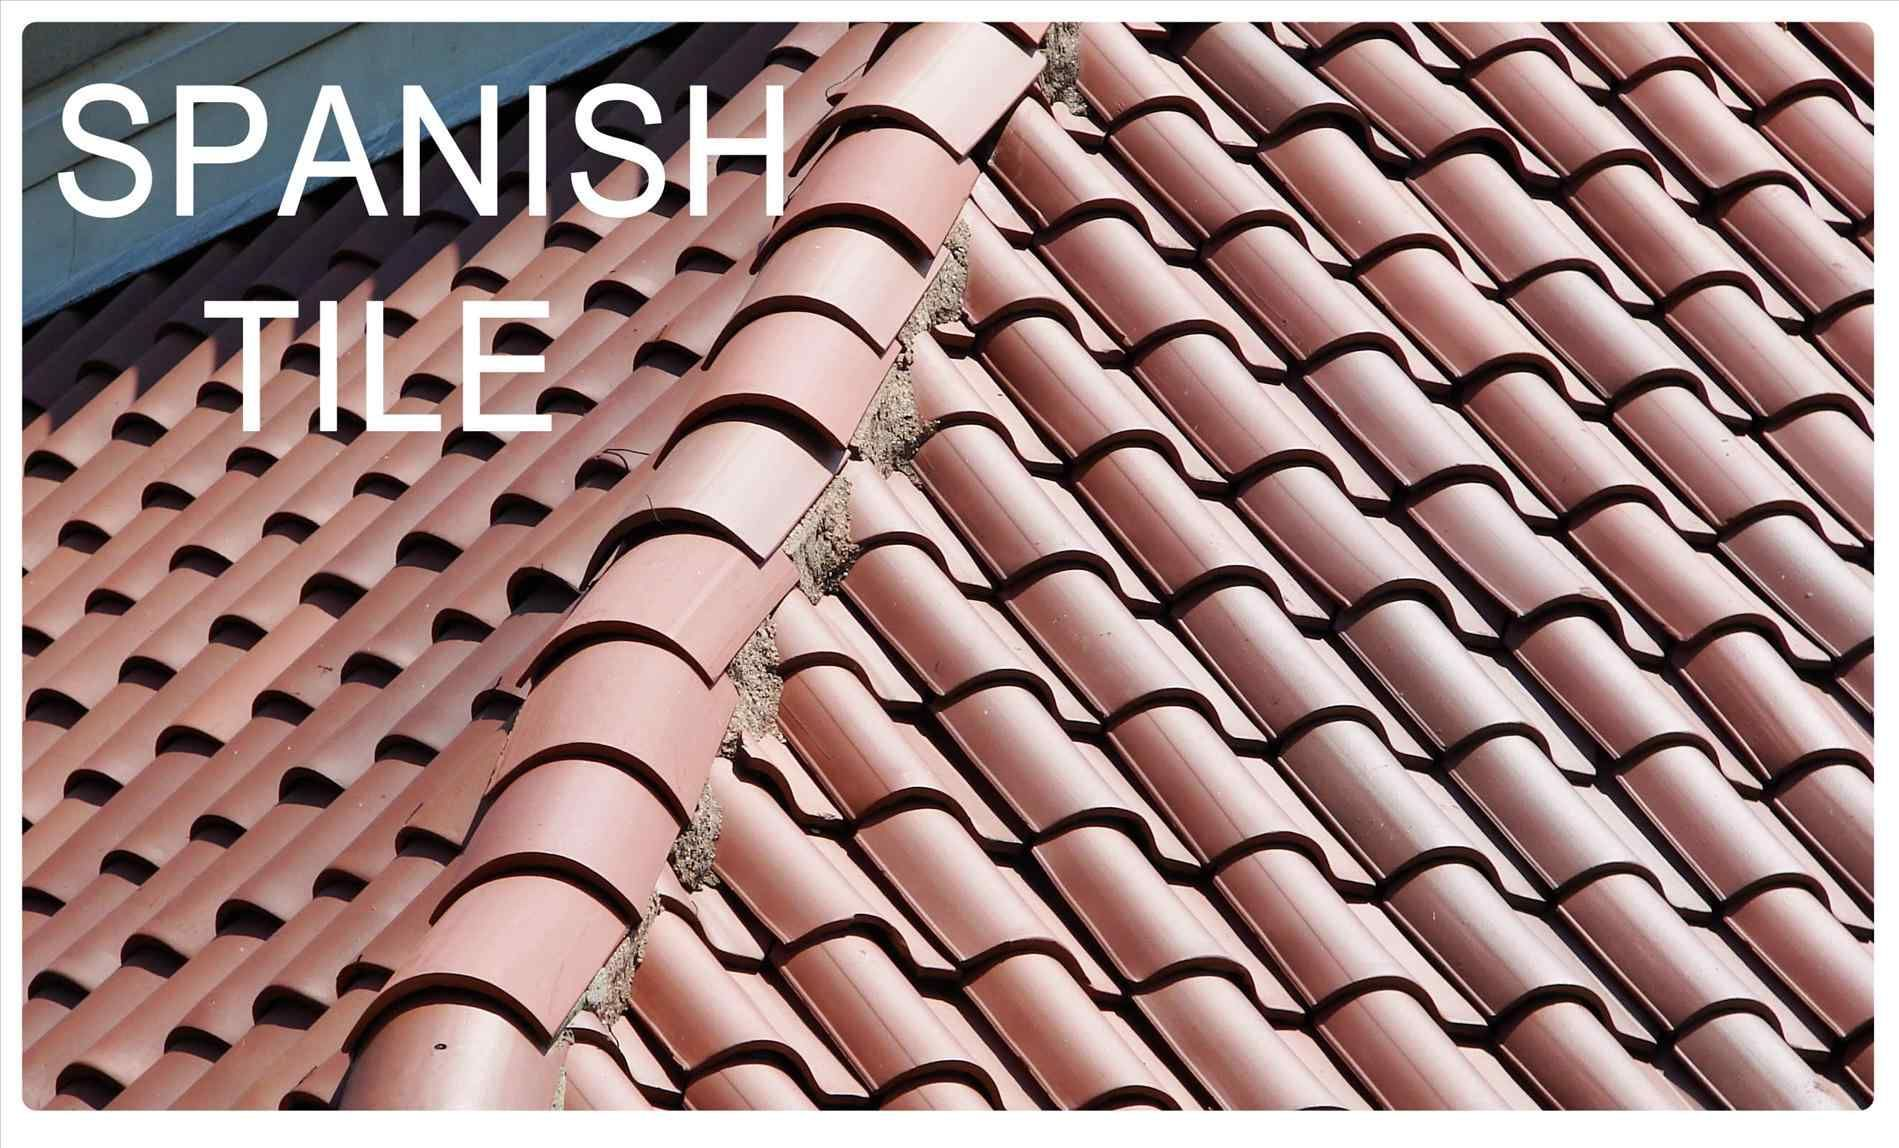 Zincshield Roof Zinc Strips Prevent Roof Stains Caused By Algae Fungus Mold Moss Mildew Lichen Mildew Roof Cleaning Moss